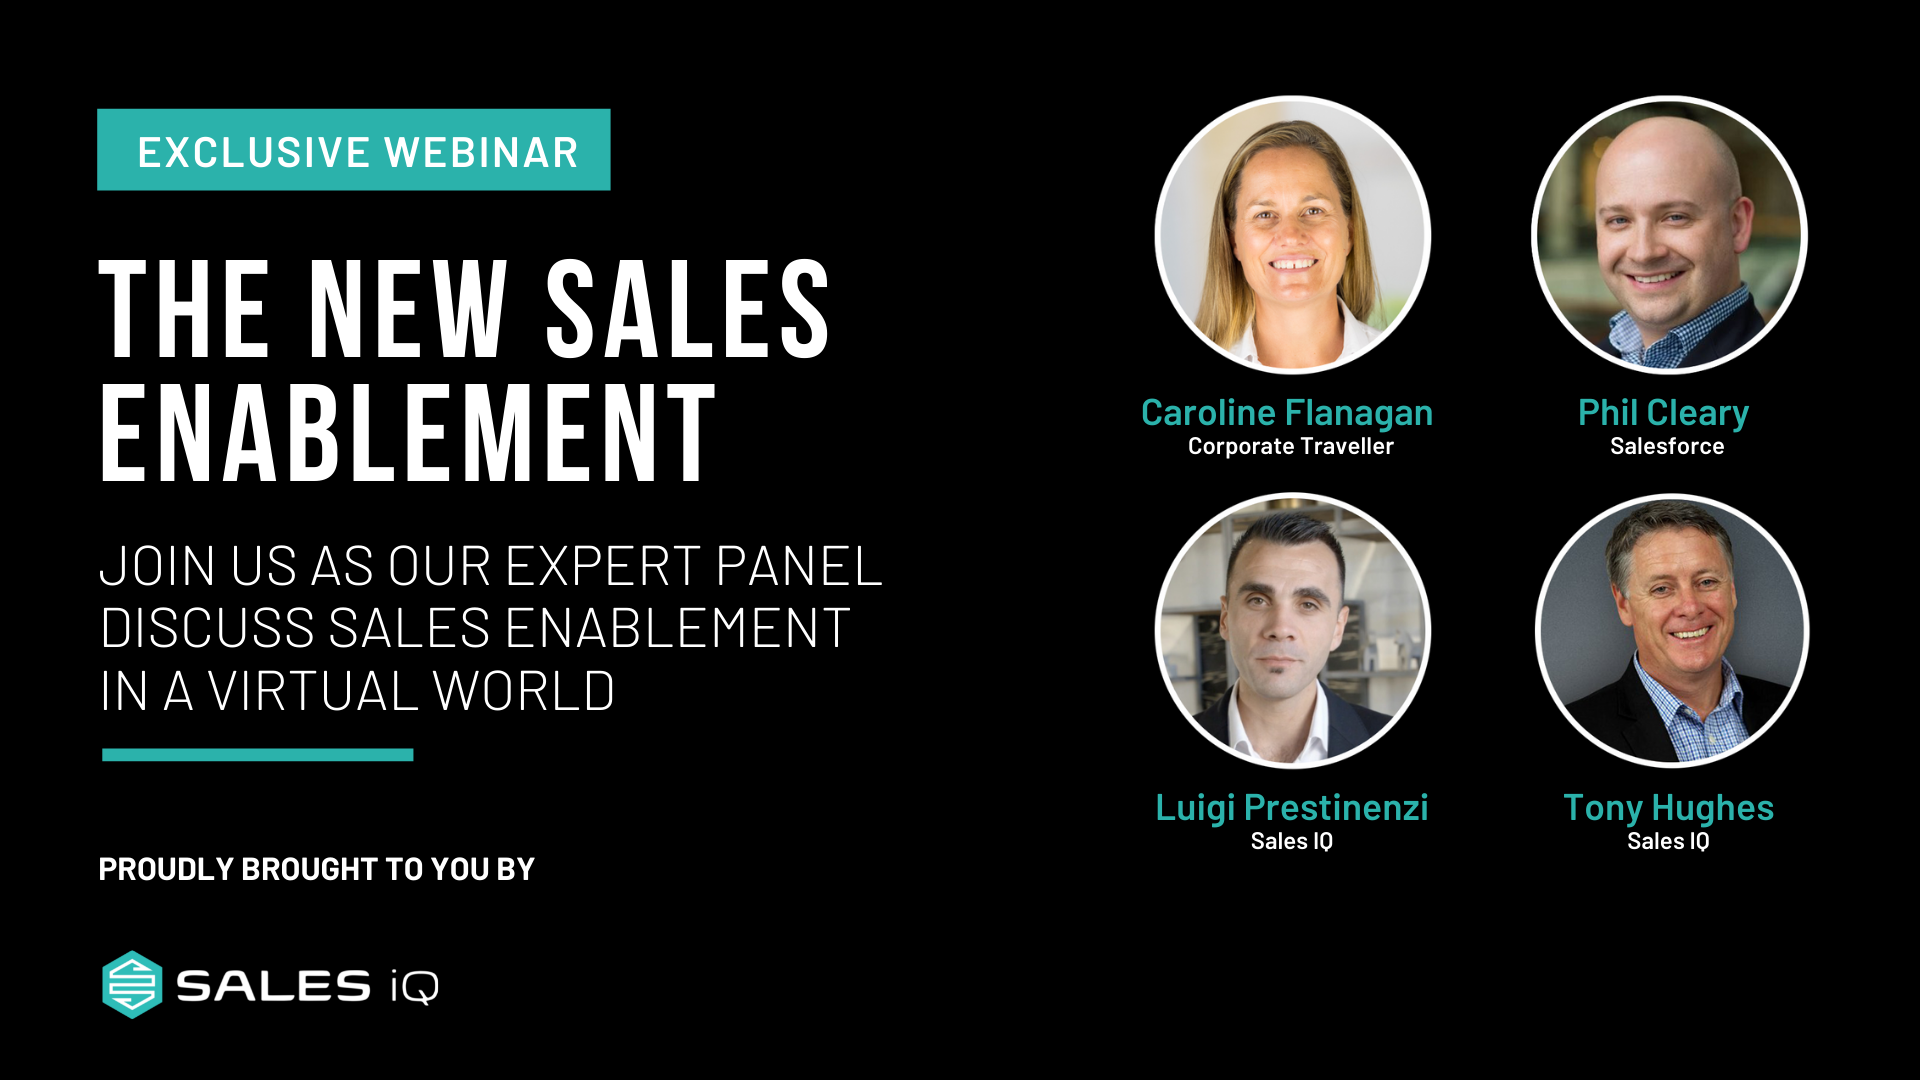 THE NEW SALES ENABLEMENT